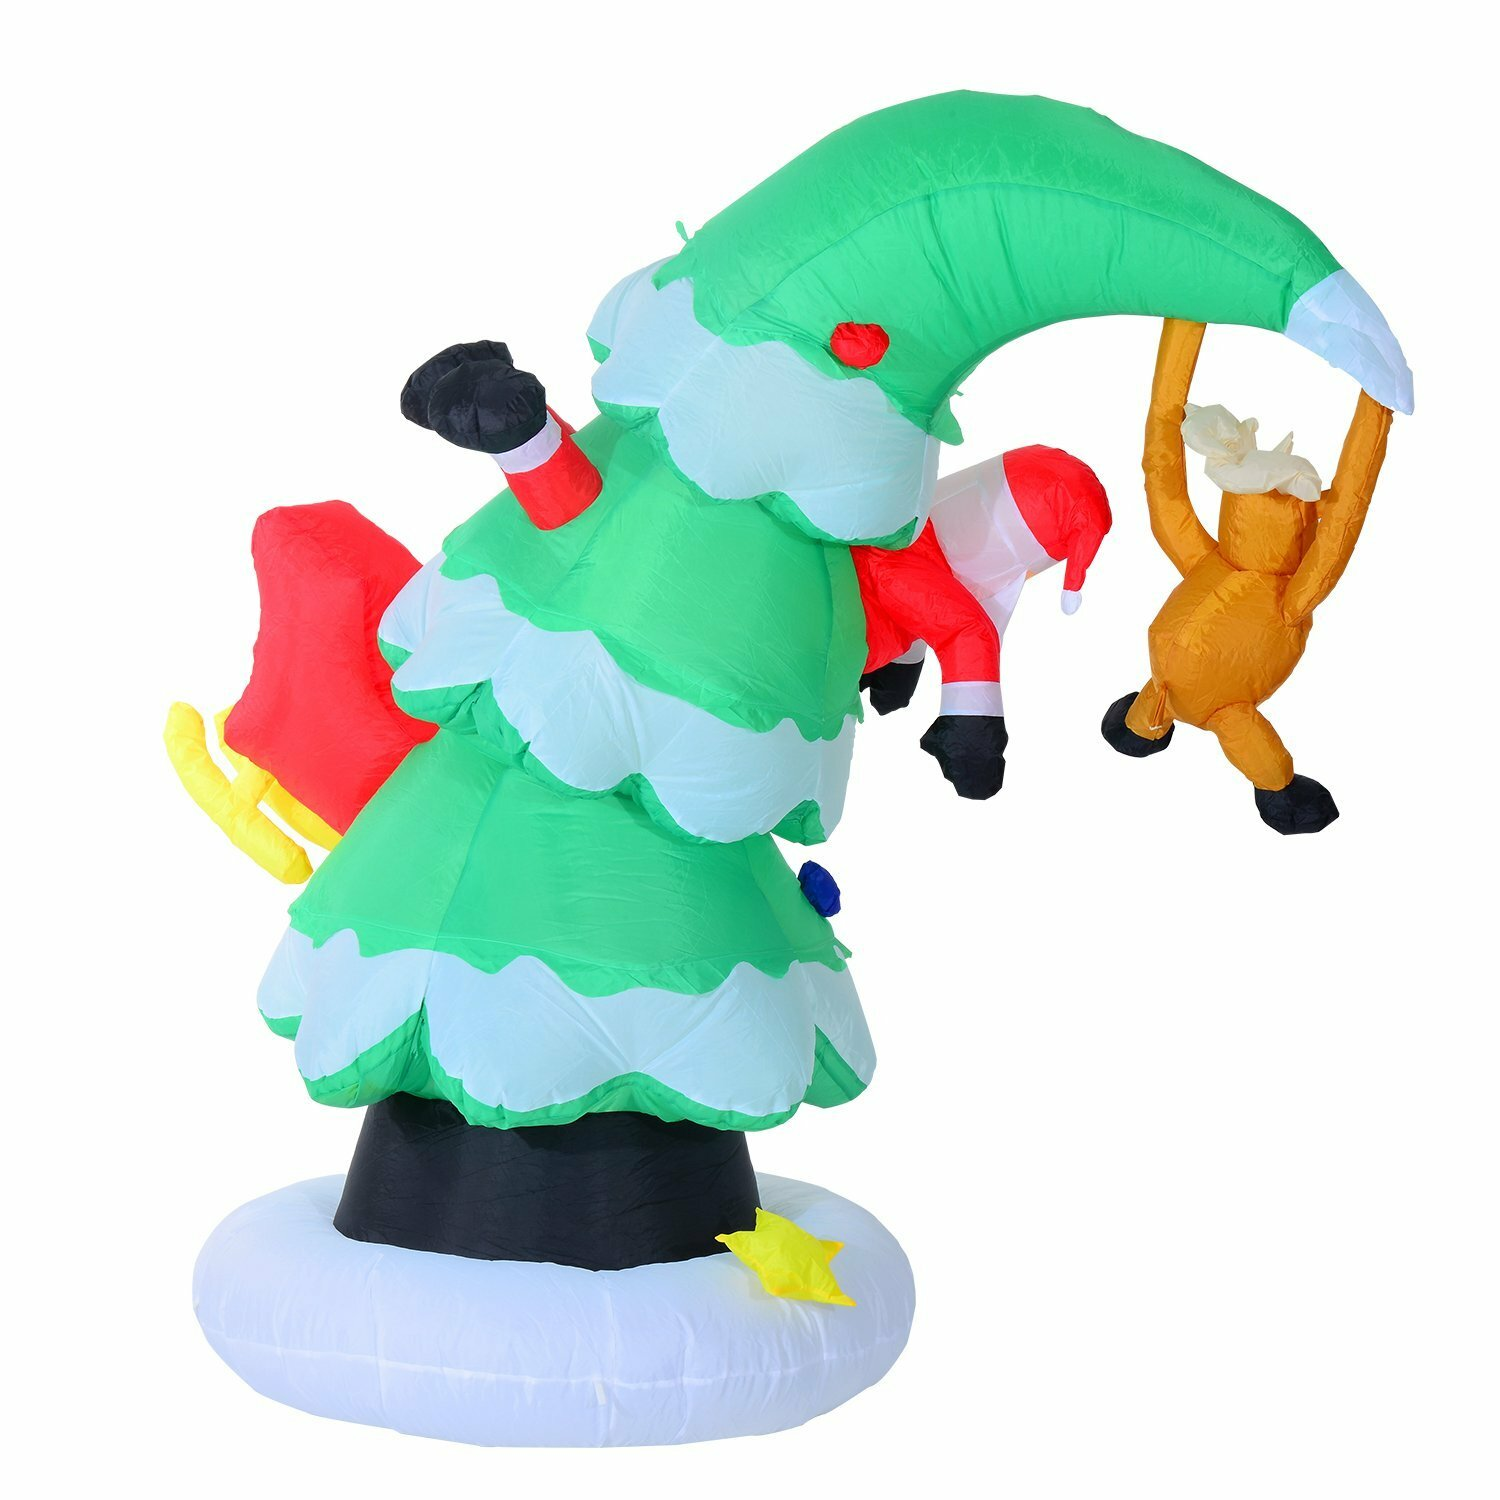 Santa Claus Lawn Decorations: Aosom 7' Inflatable LED Lit Santa Claus Stuck In Christmas